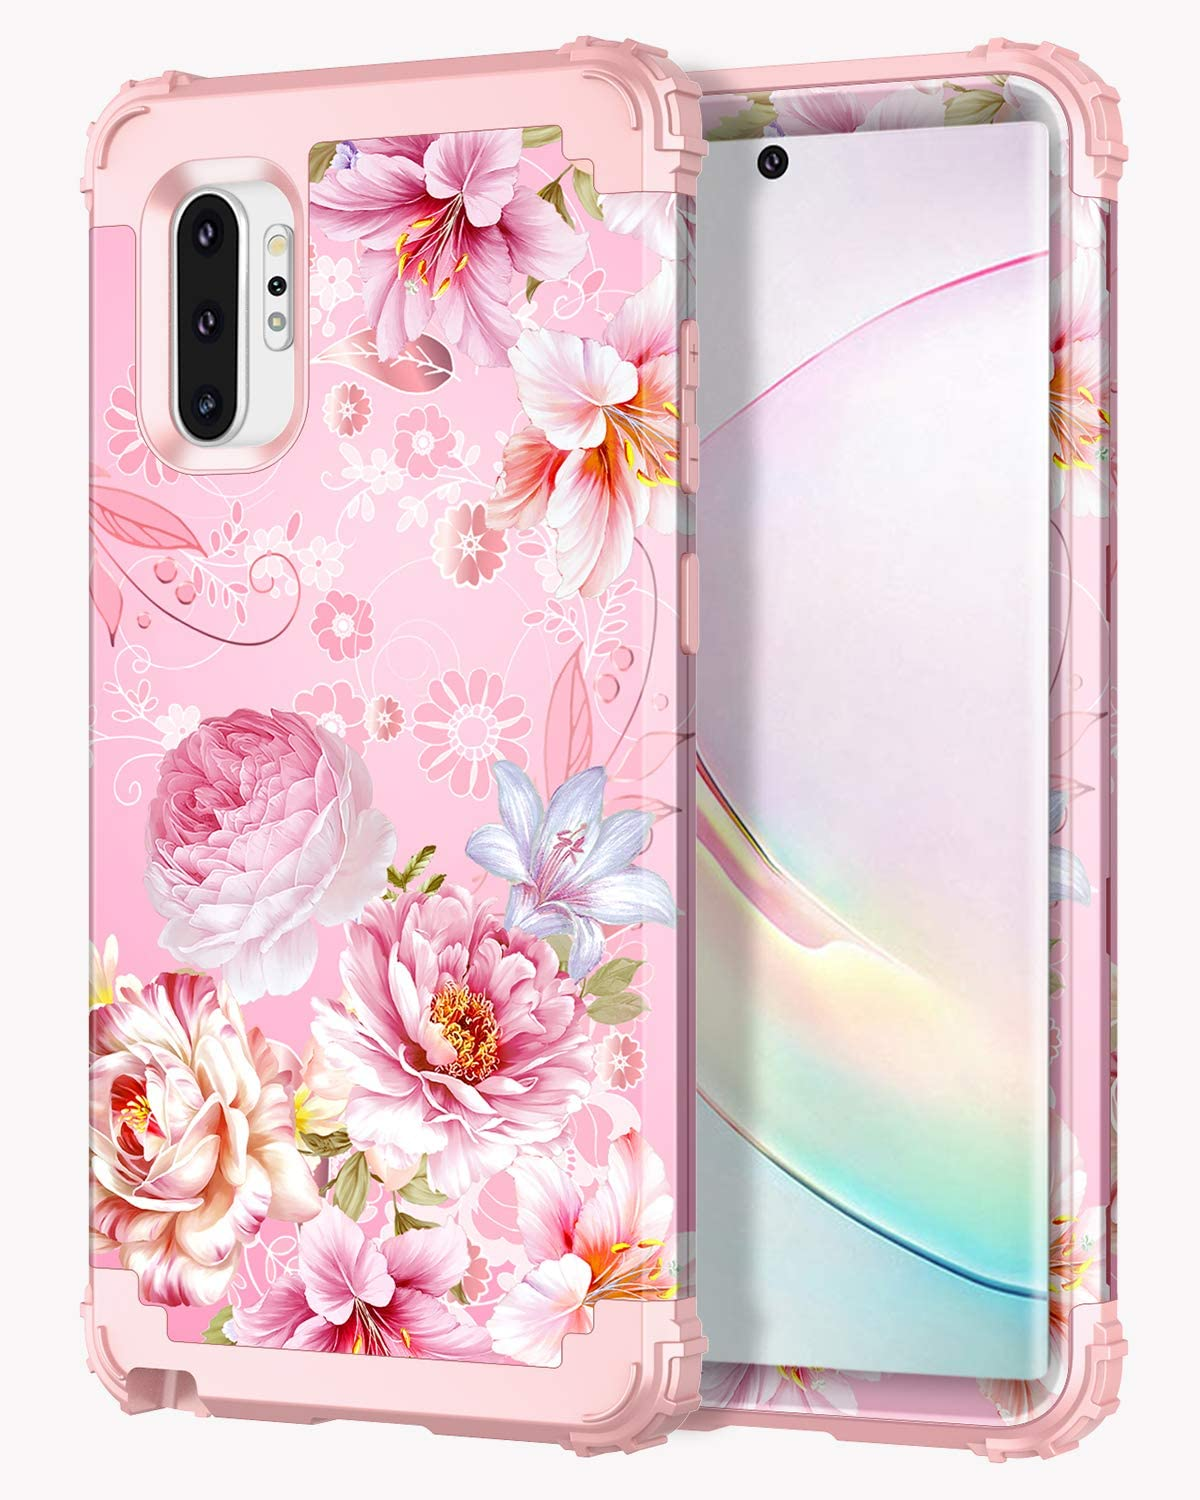 Hekodonk Compatible Note 10 Plus Case Floral Design Heavy Duty Shockproof Fullbody Protective Impact Hybrid Hard Cover for Samsung Galaxy Note 10 Plus Pink Flower